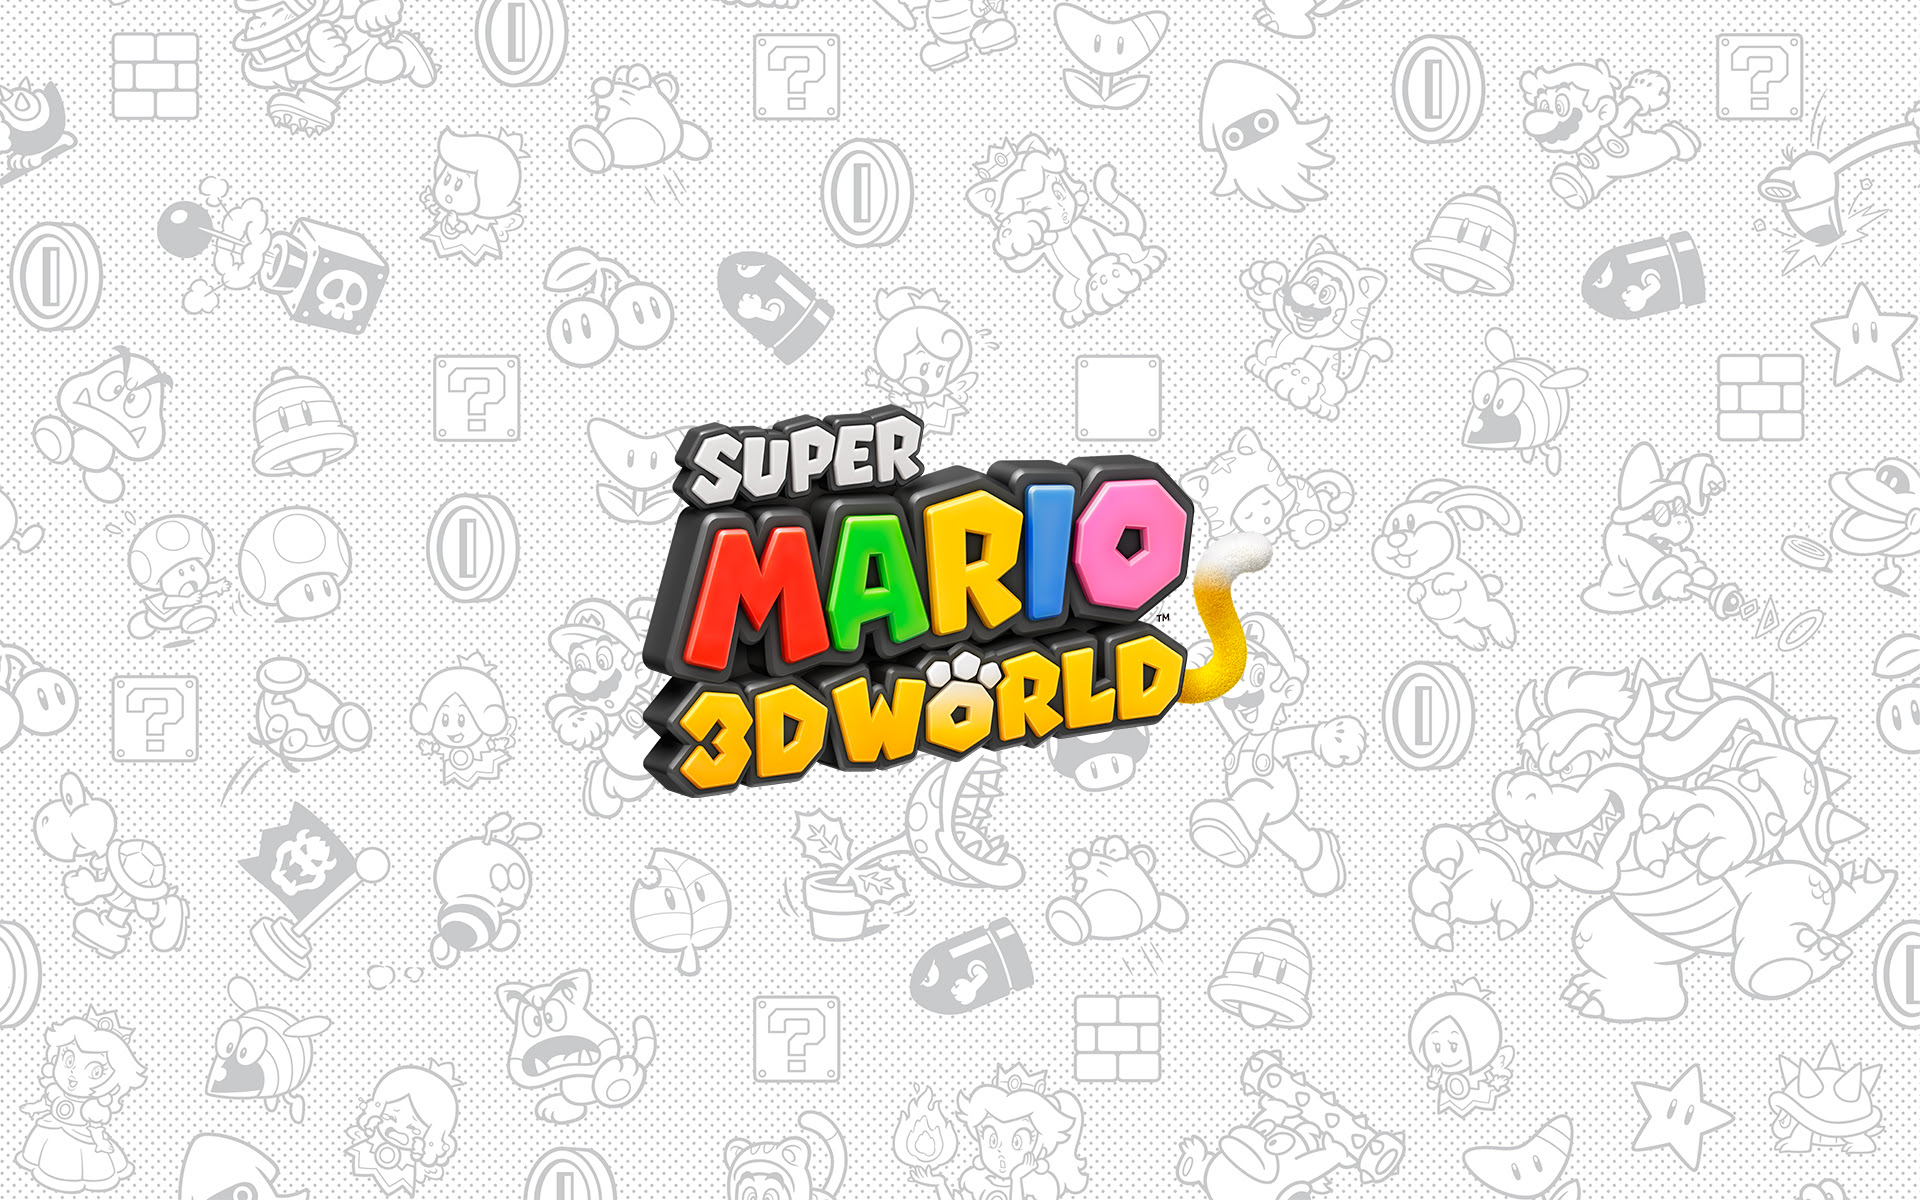 Super Mario 3d World Nintendo Wallpaper 36226223 Fanpop